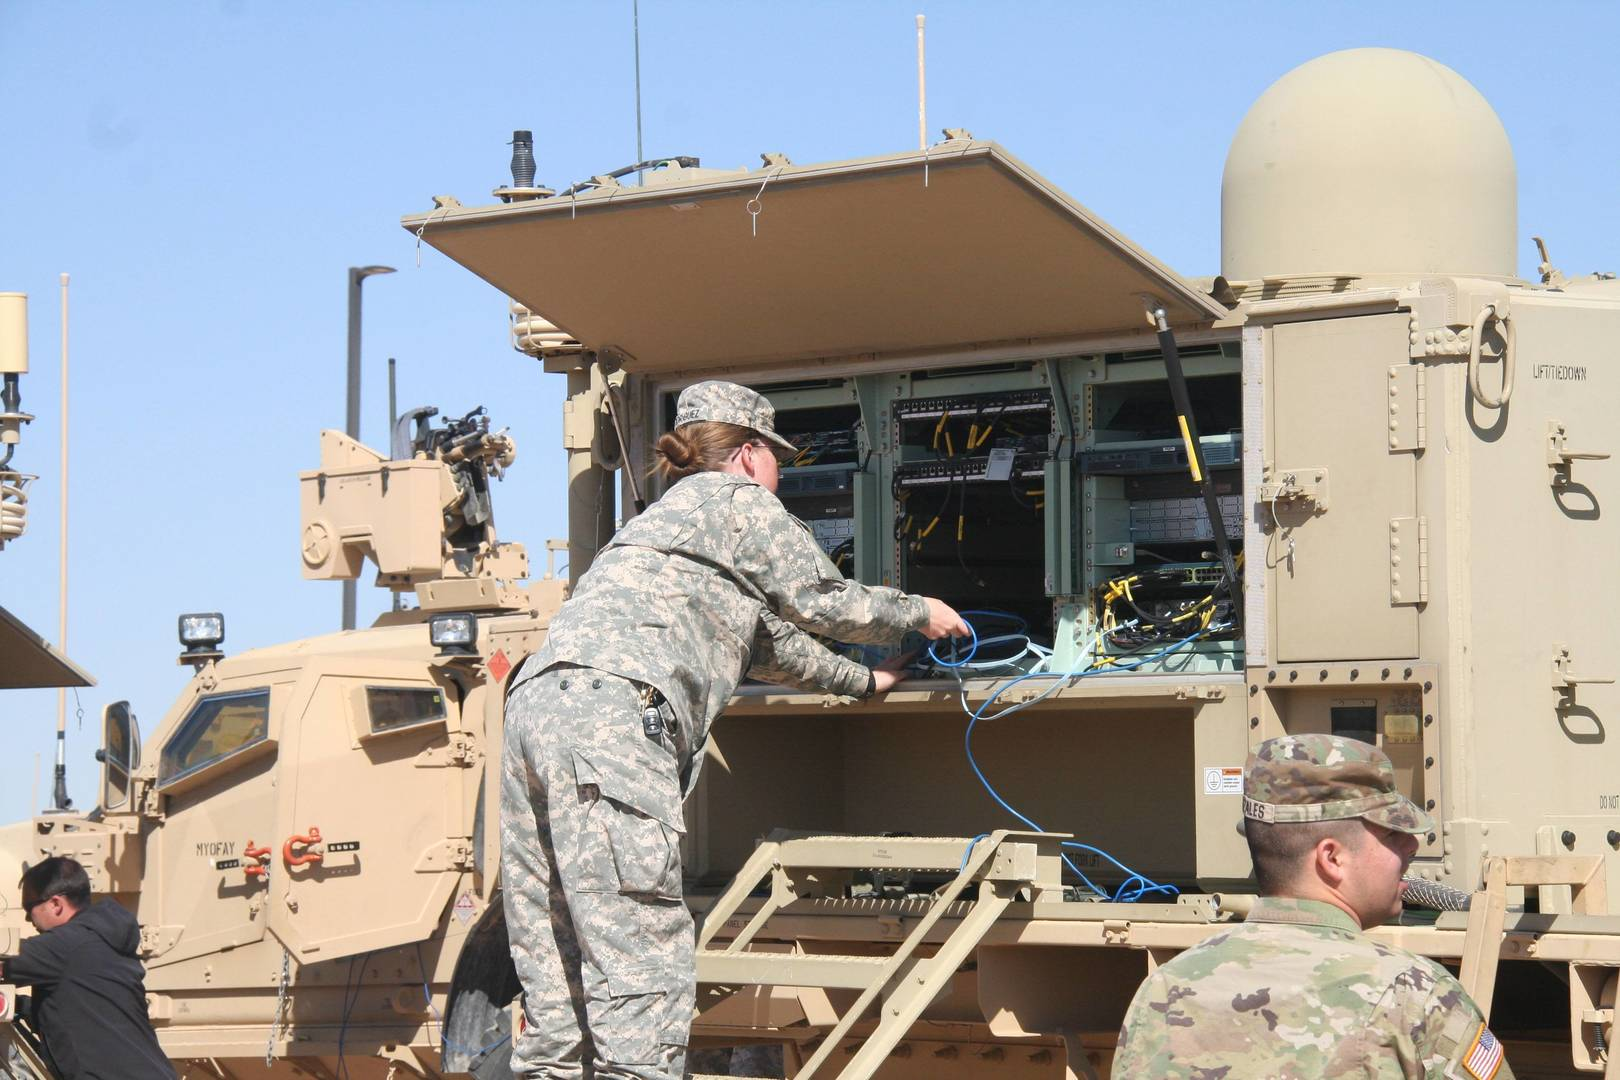 The Soldier's Network - Rapid Vehicle Provisioning System Improves Readiness and Security